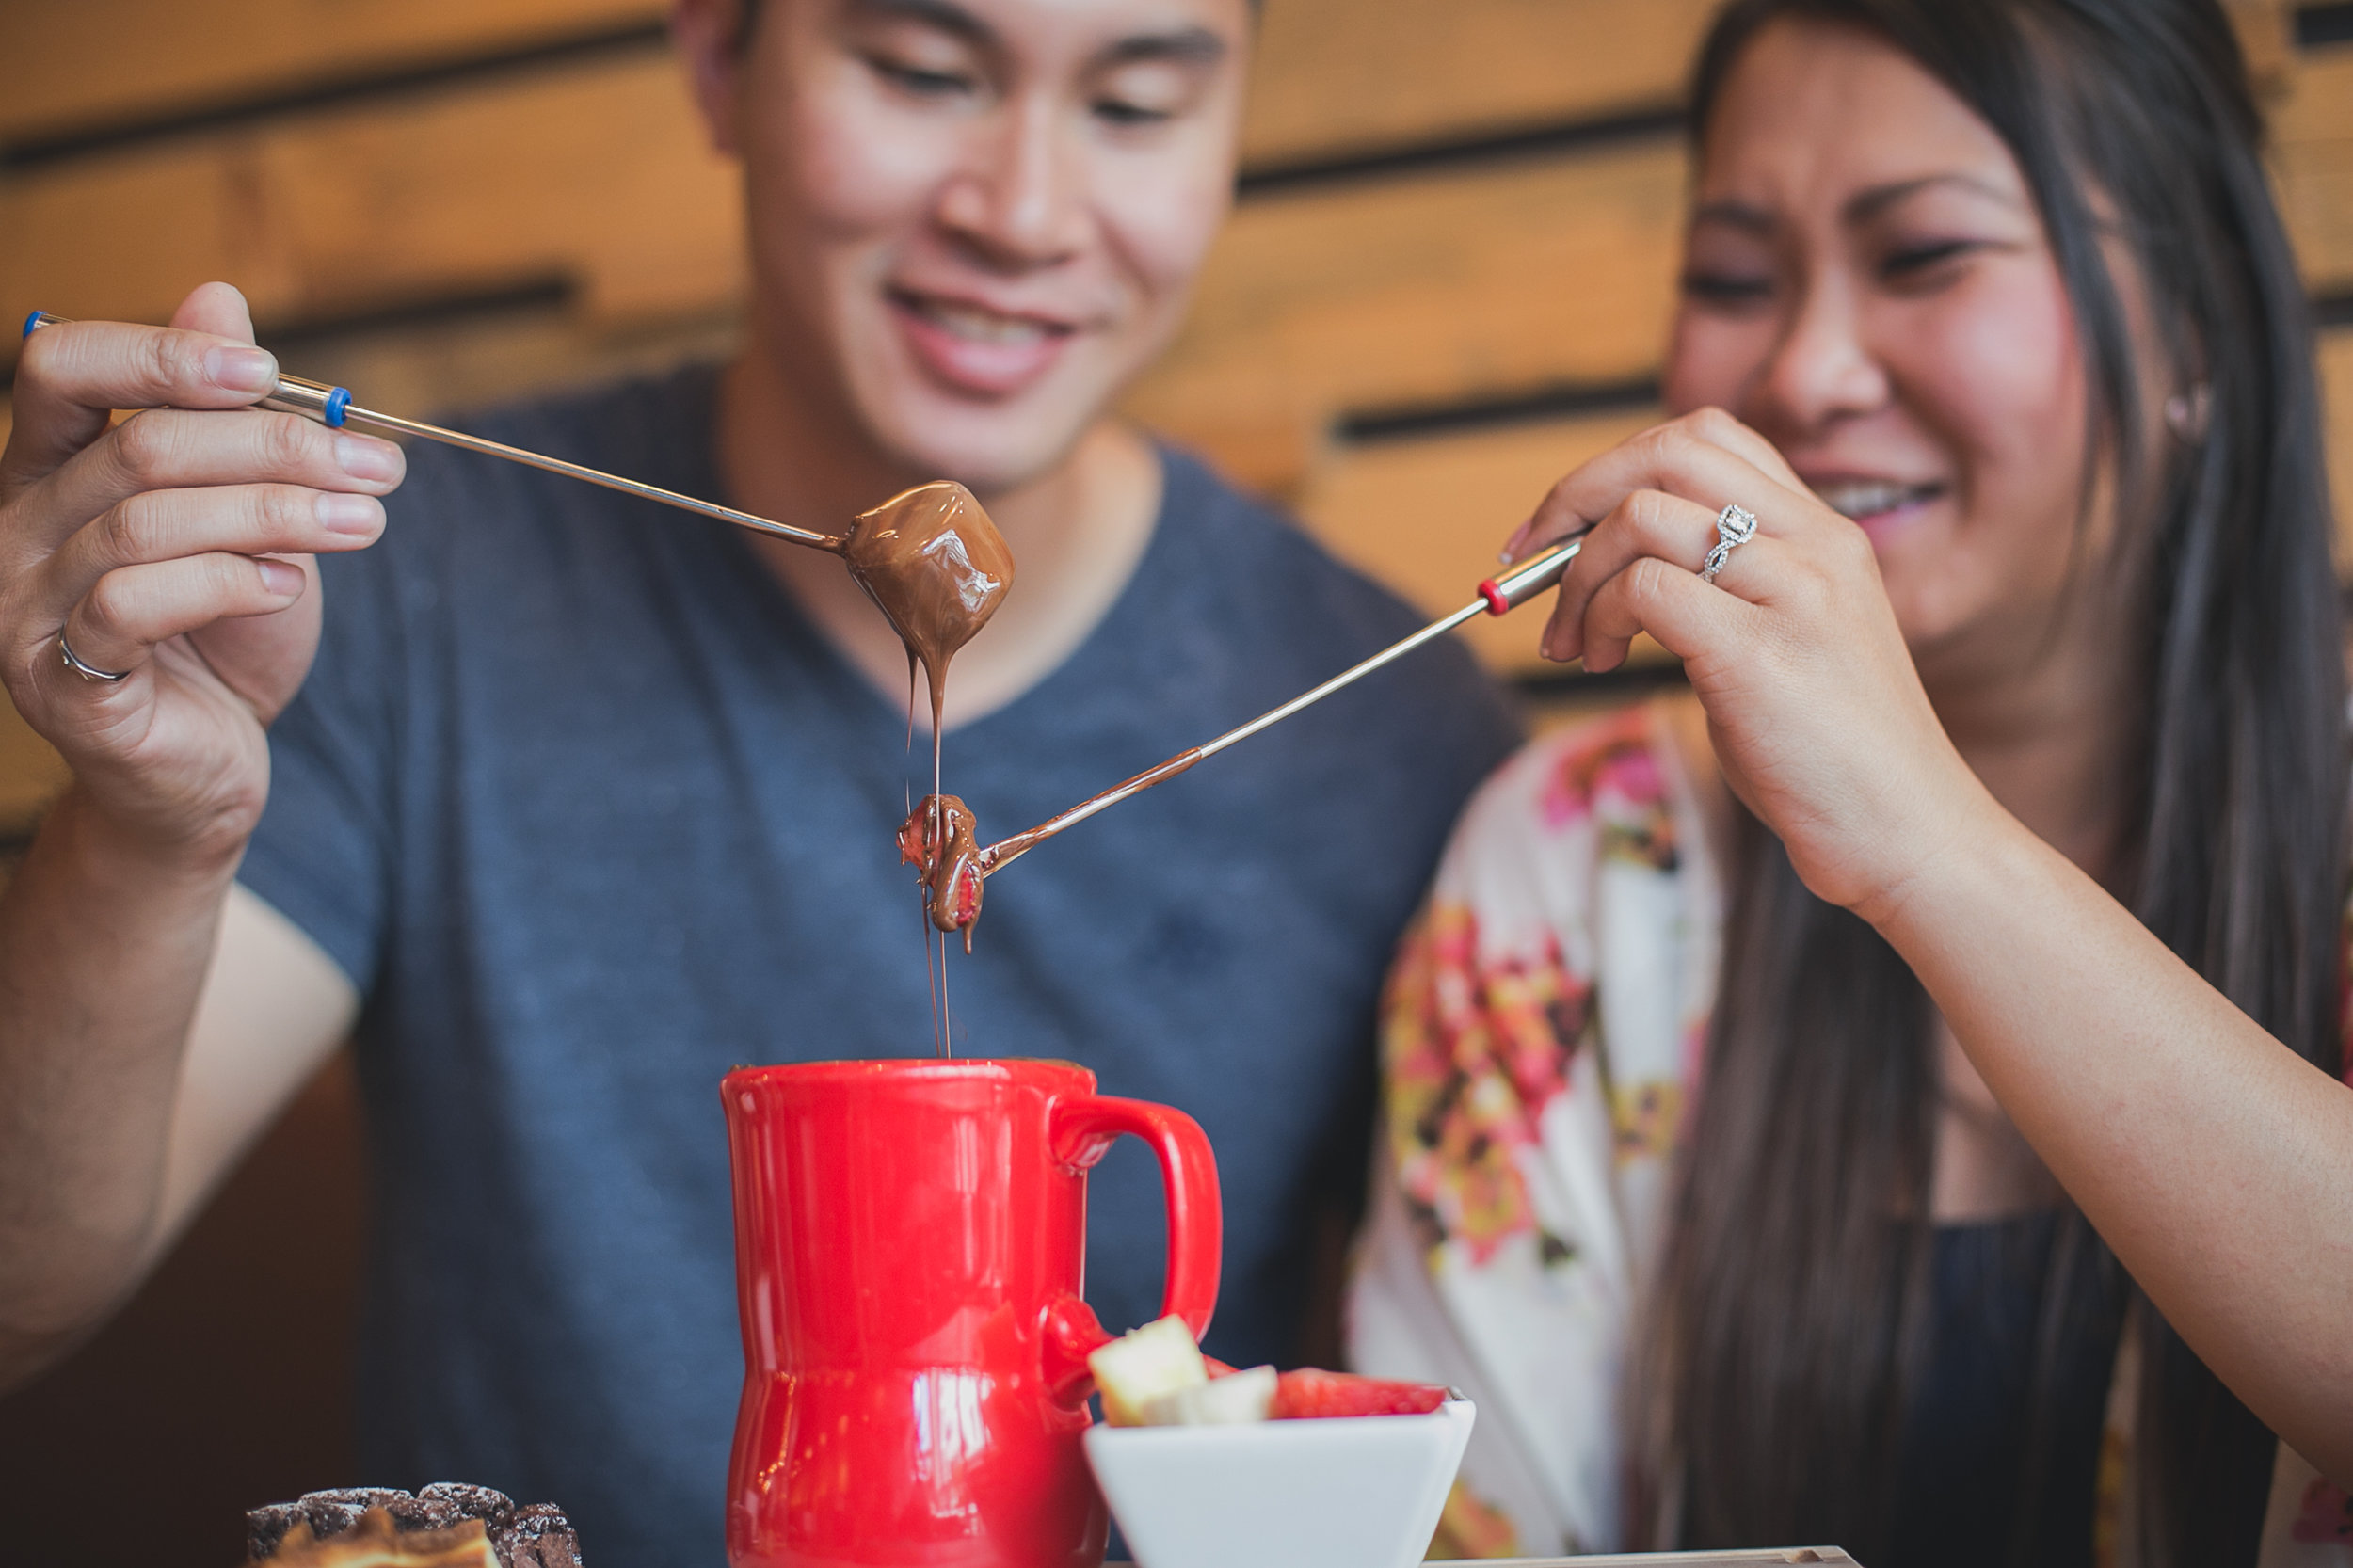 chocolate dripping off the fruits and couple blurry in the background during cacao70 engagement photoshoot